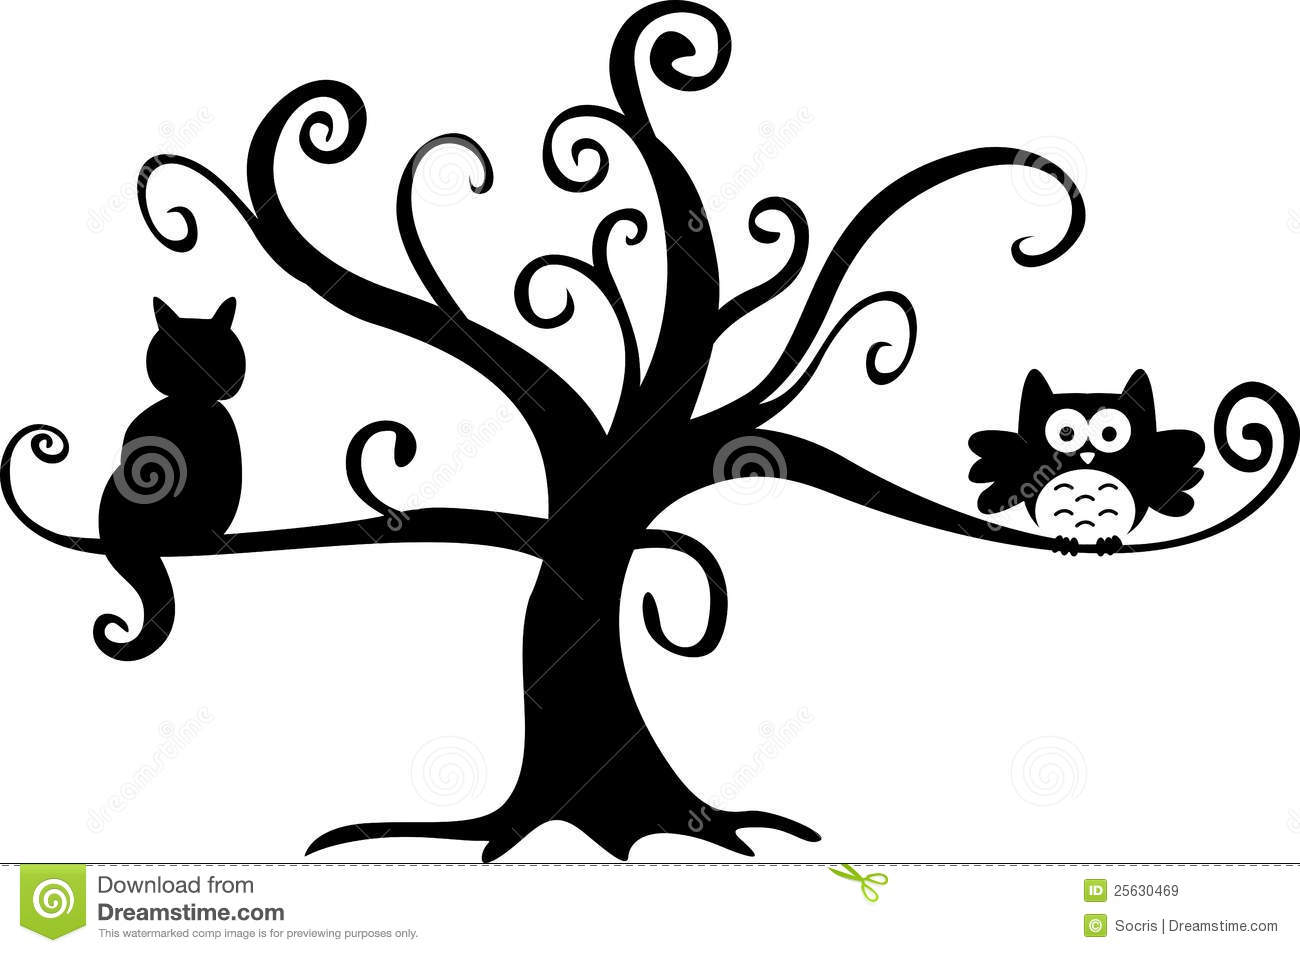 How To Draw A Spooky Halloween Tree Apps Directories